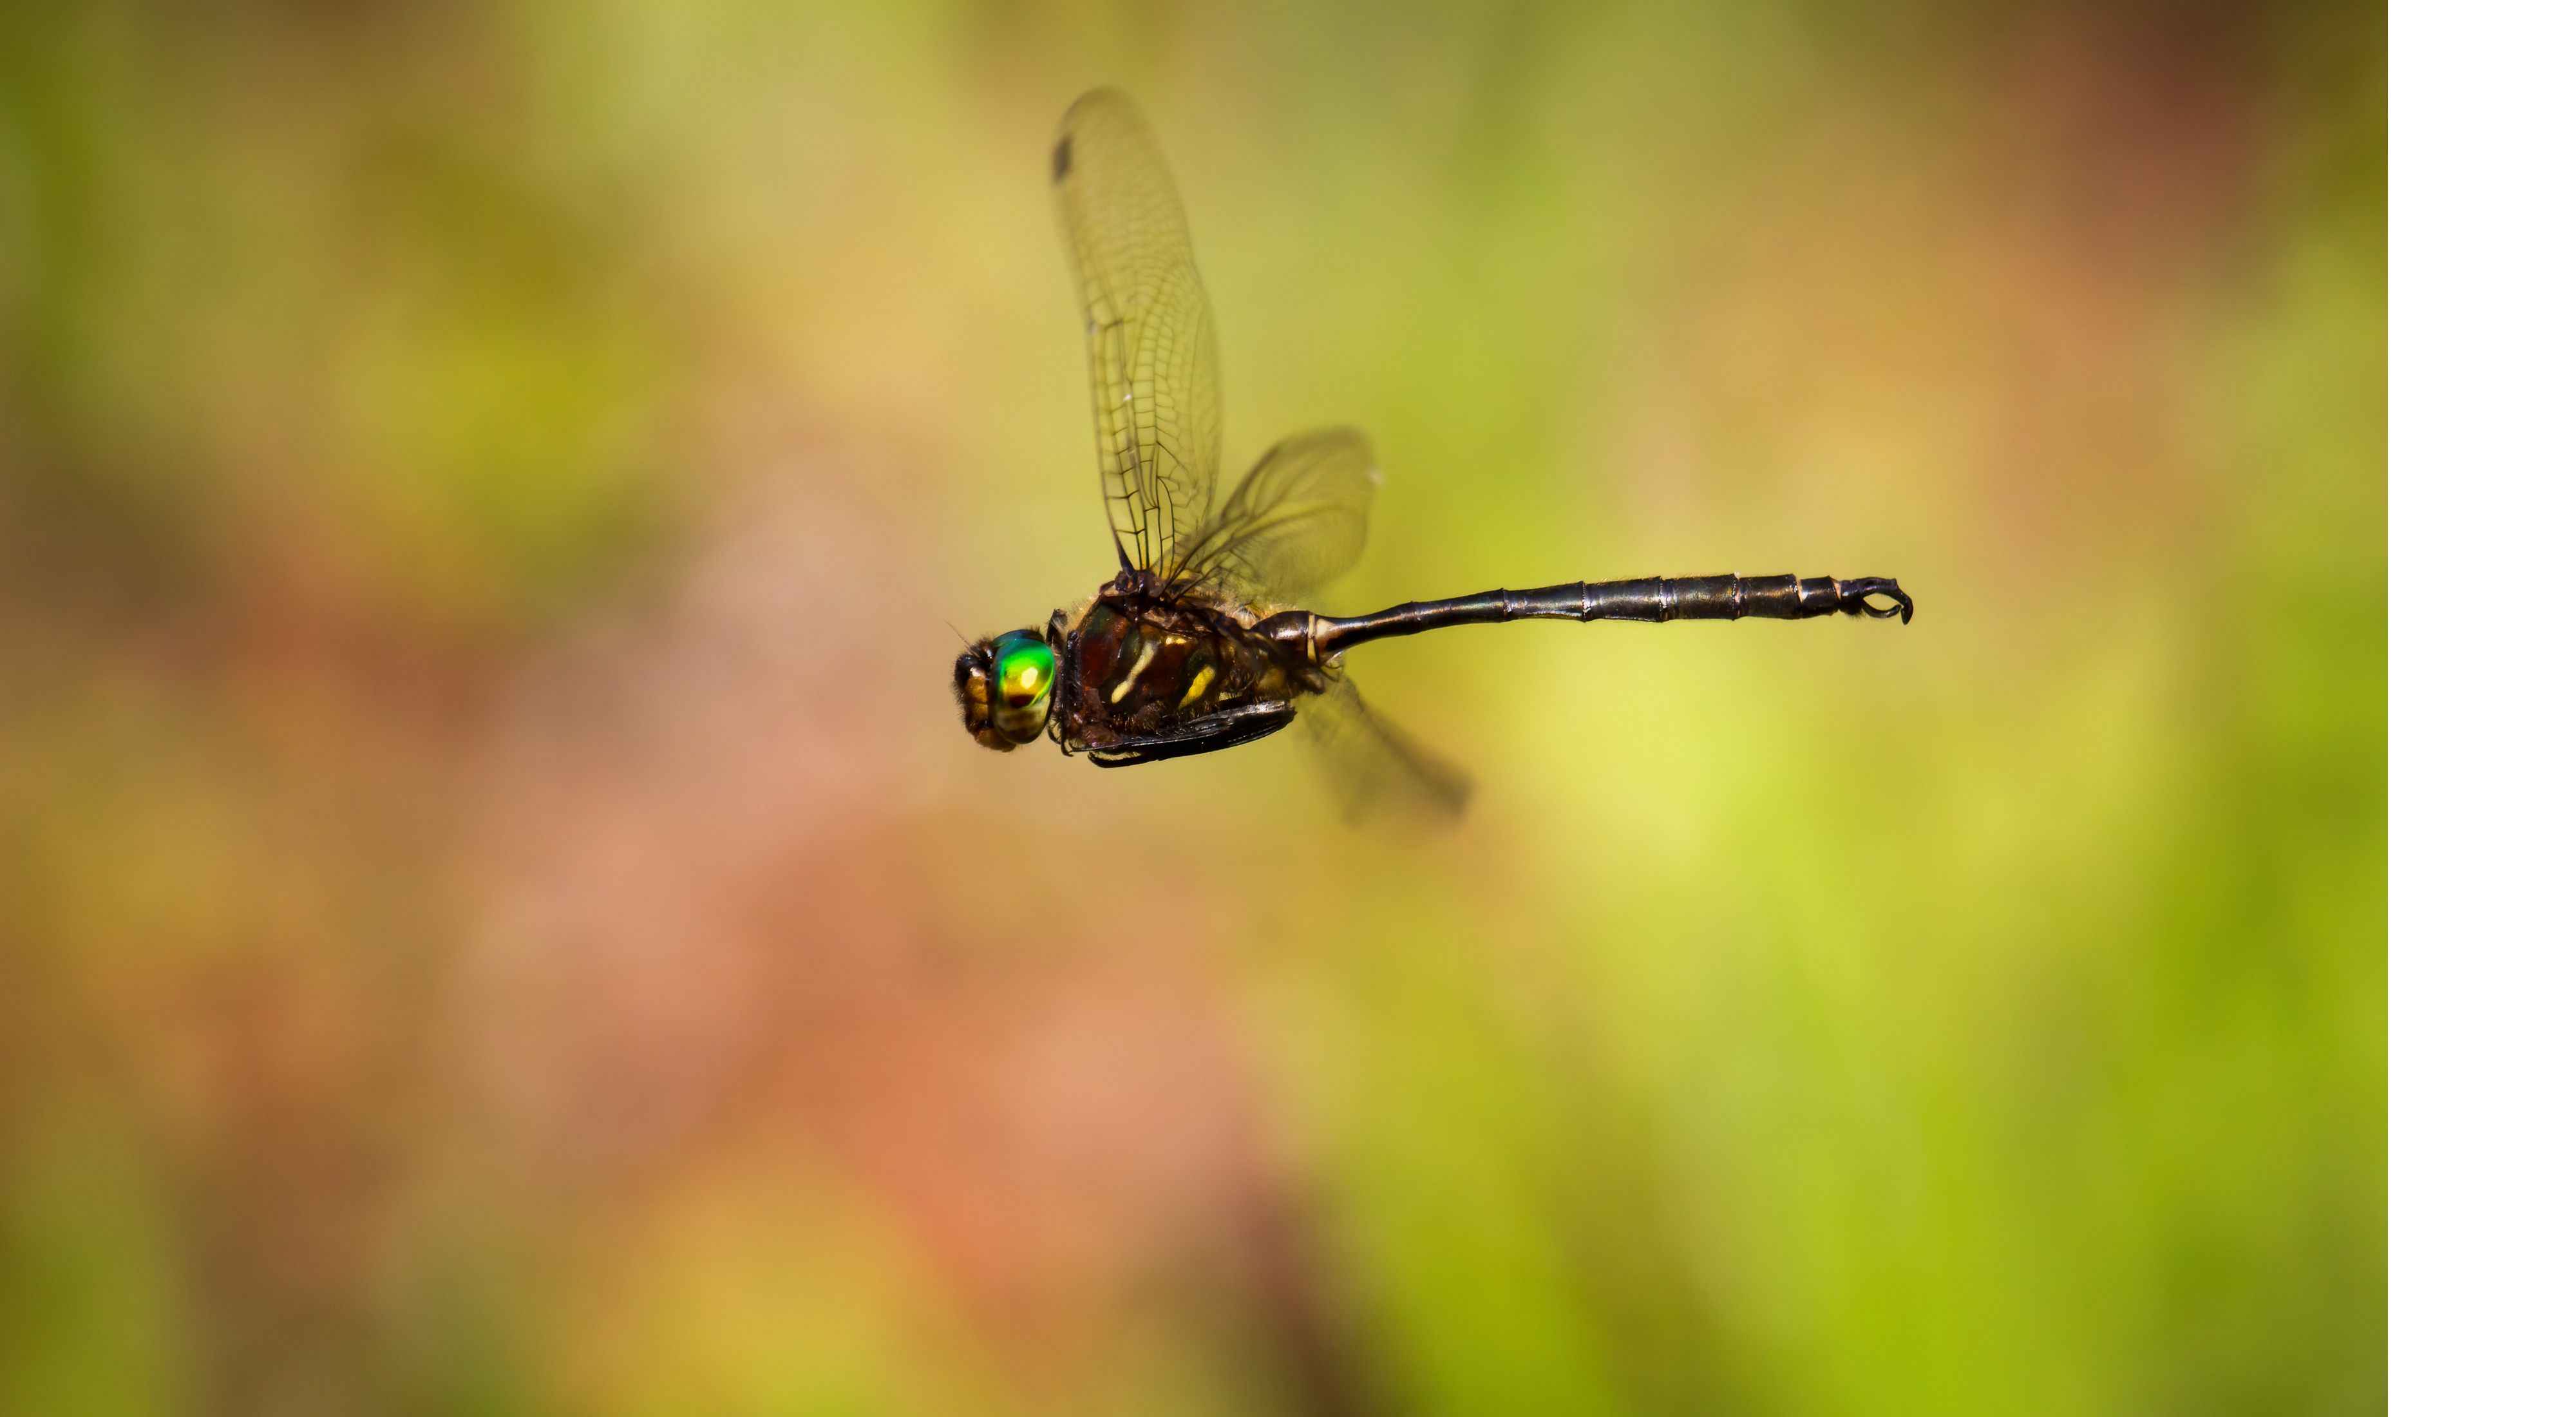 darkly colored dragonfly with green head in flight